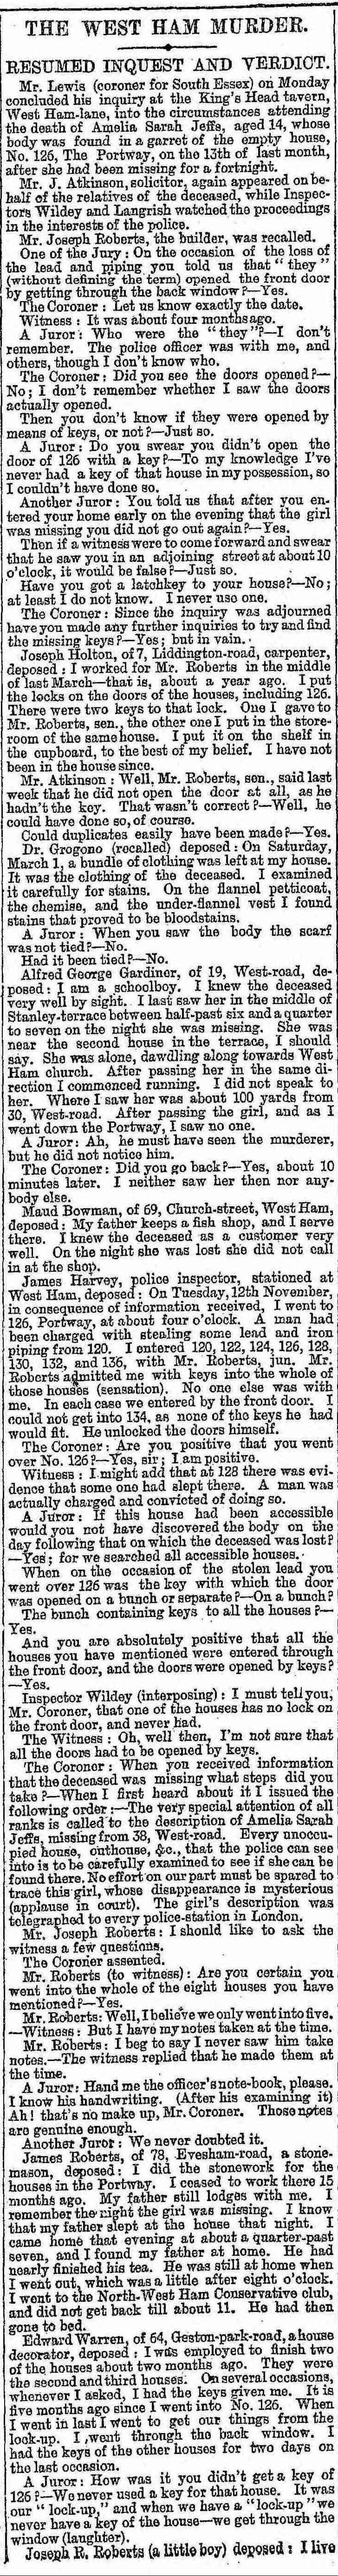 The final day of the Inquest Into Amelia jeffs Death.